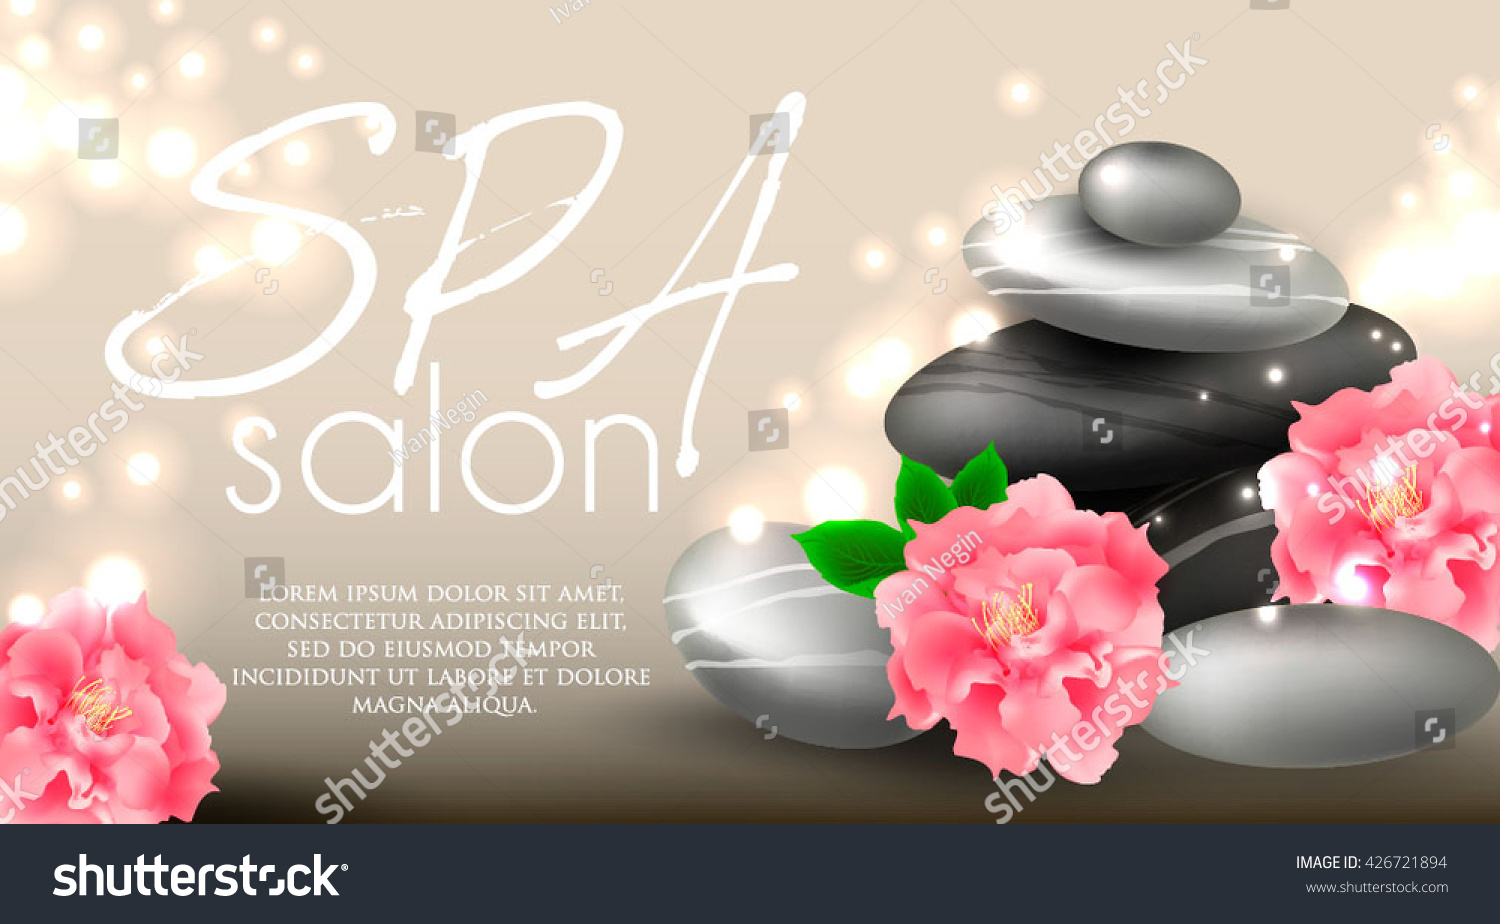 Vector Gift Voucher Template Lotus Lily Stock Vector 426721894 ...